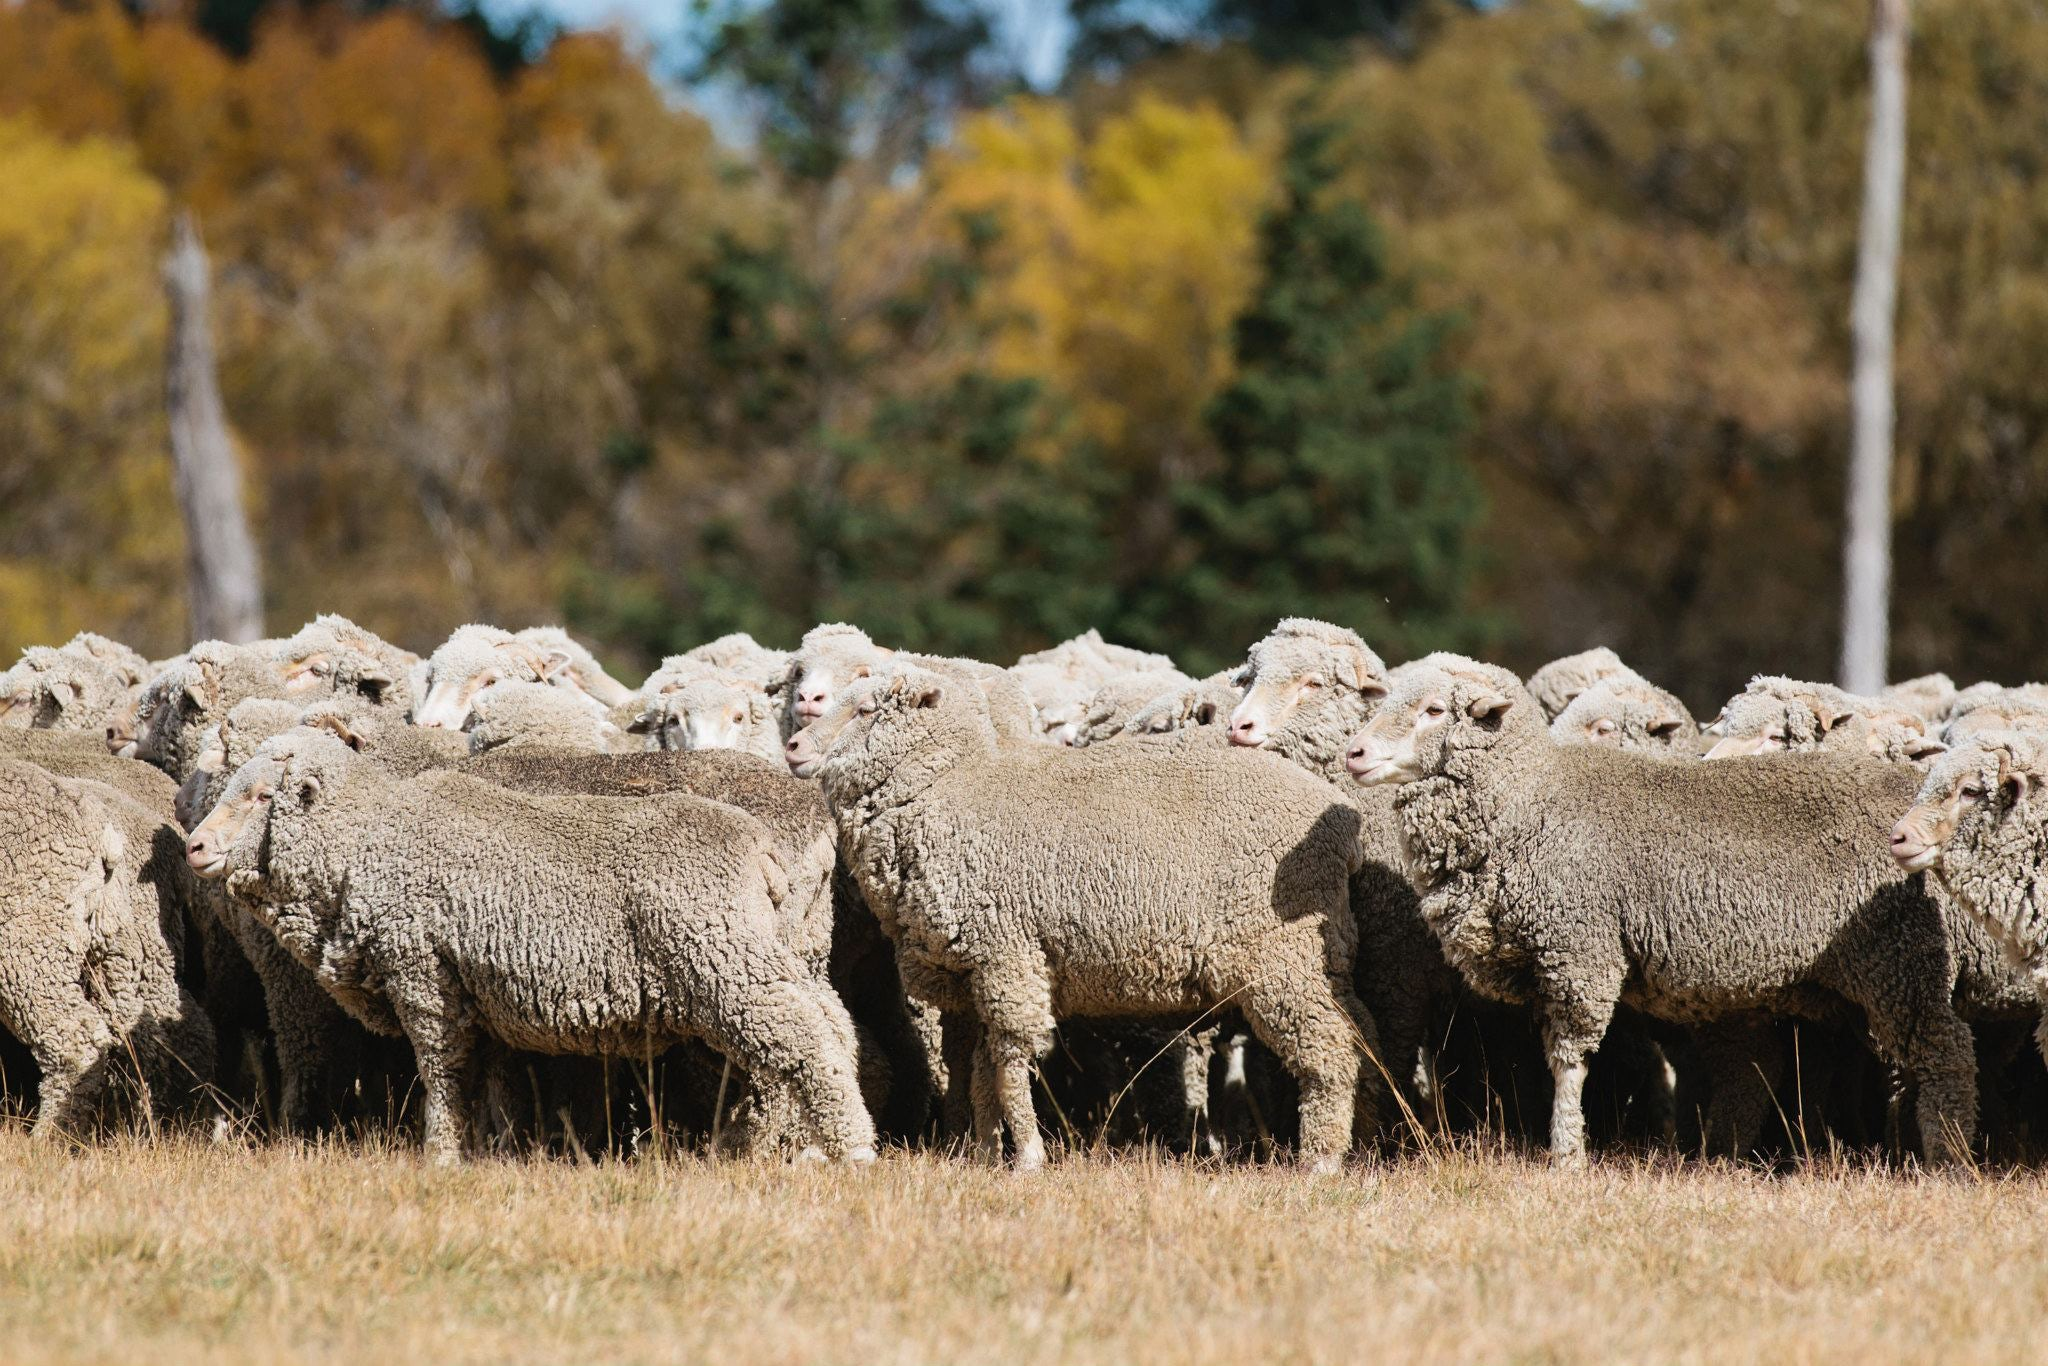 Australian Sheep | Source: Zegna Facebook Page